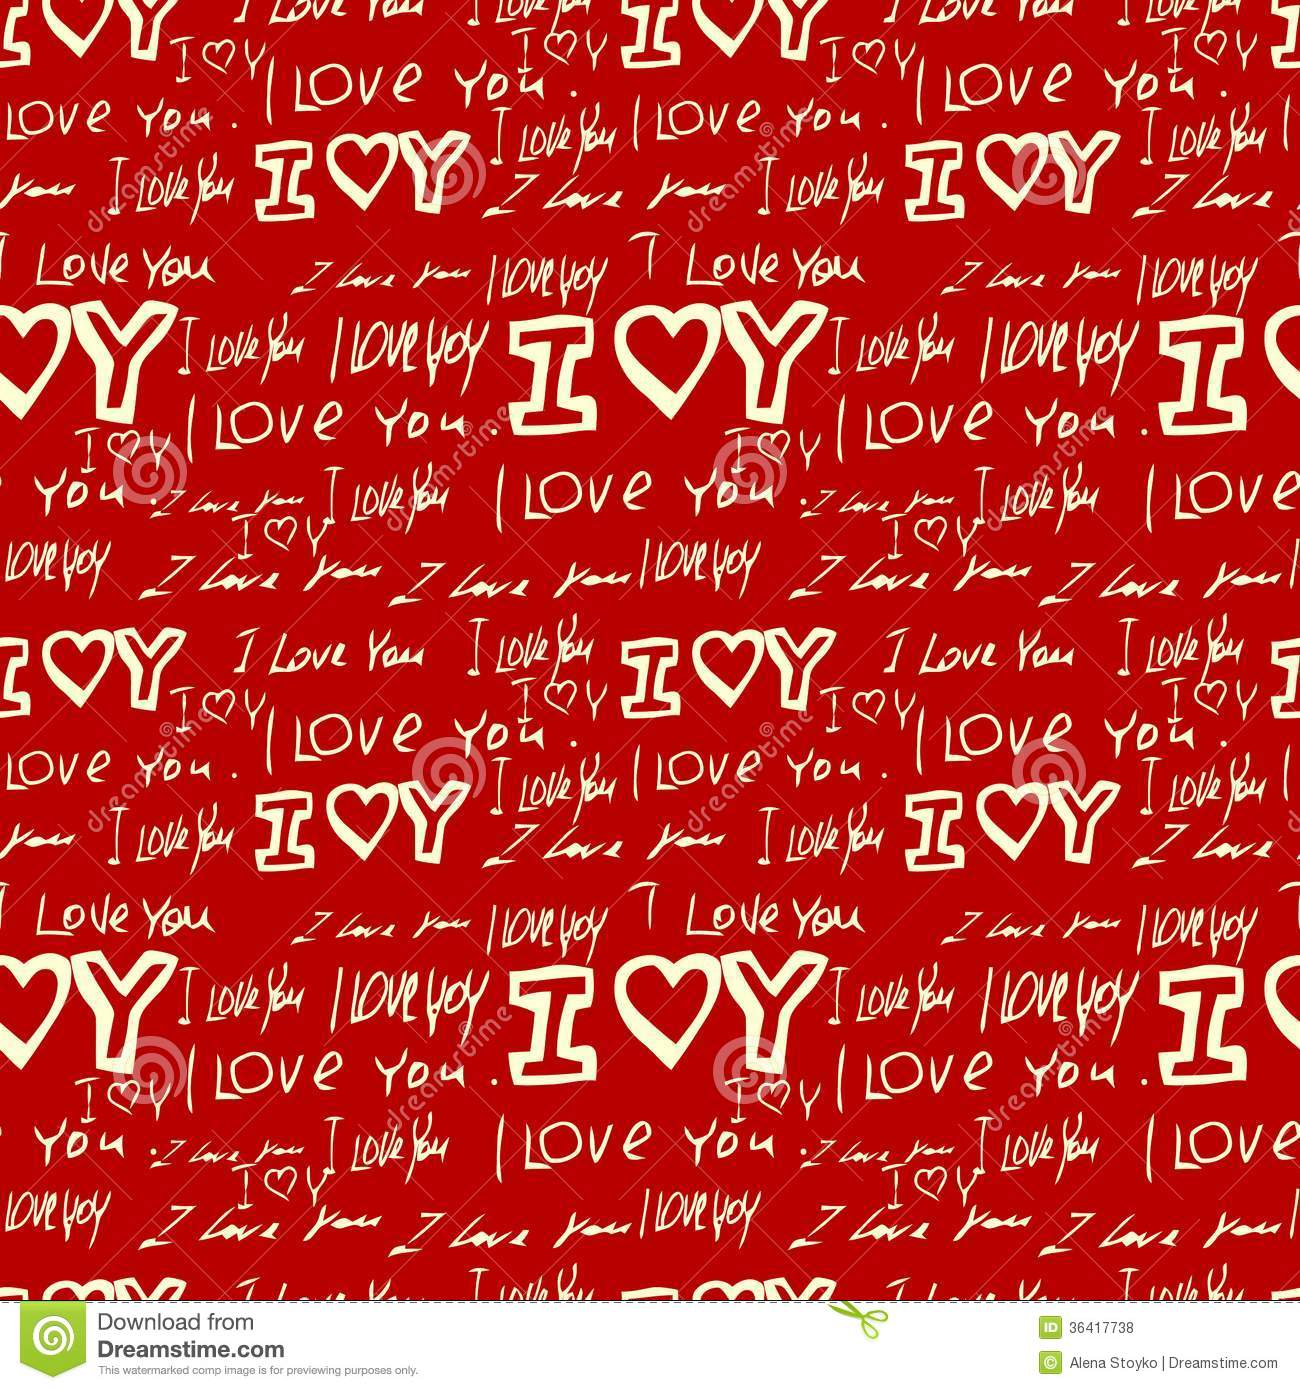 Words I Love You On Red Background Stock Vector - Illustration of abstract, holiday: 36417738